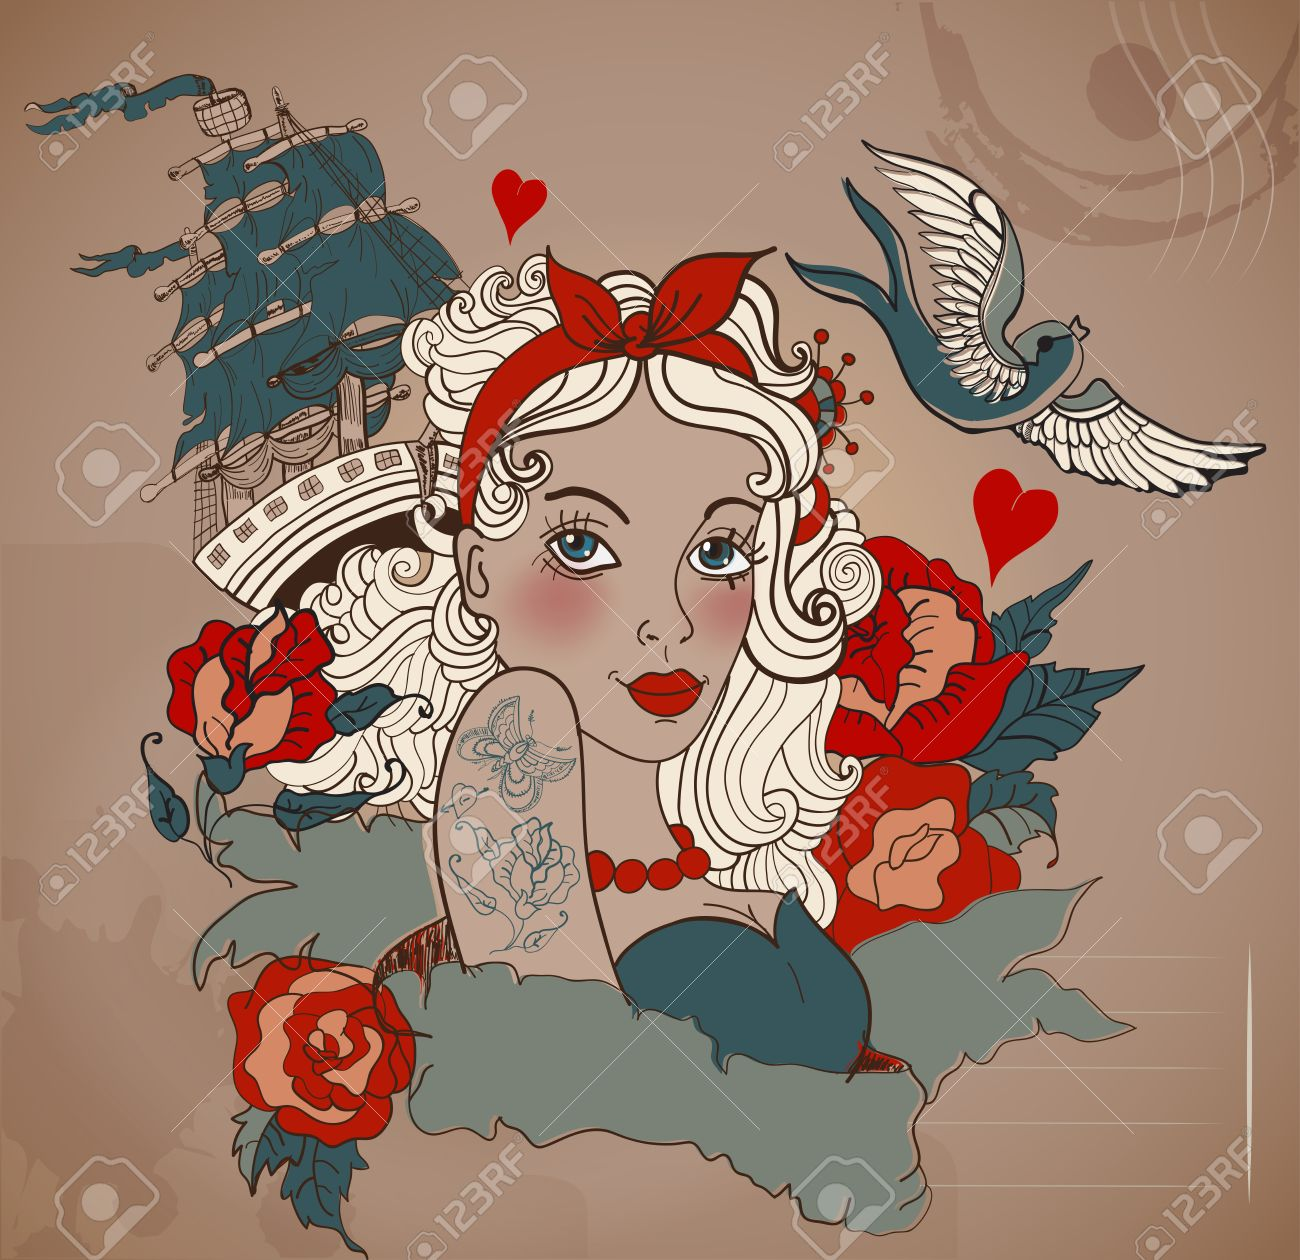 Old School Styled Tattoo Woman With Bird And Ship, Valentine Illustration  For Holiday Design